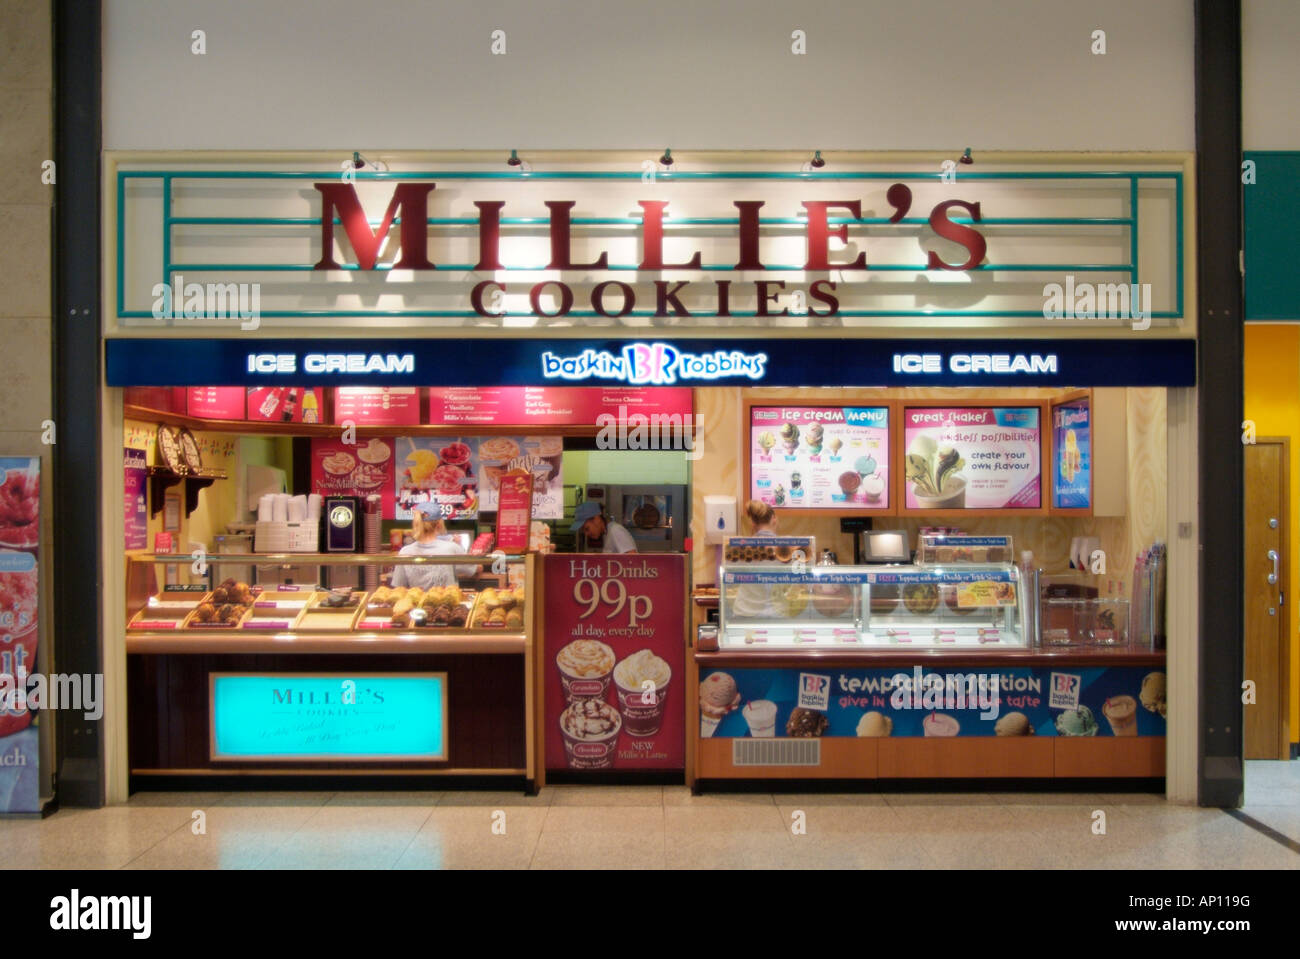 millie's cookies fast food cake pastry ice cream hot cold takeaway snack arndale centre Manchester display mall - Stock Image